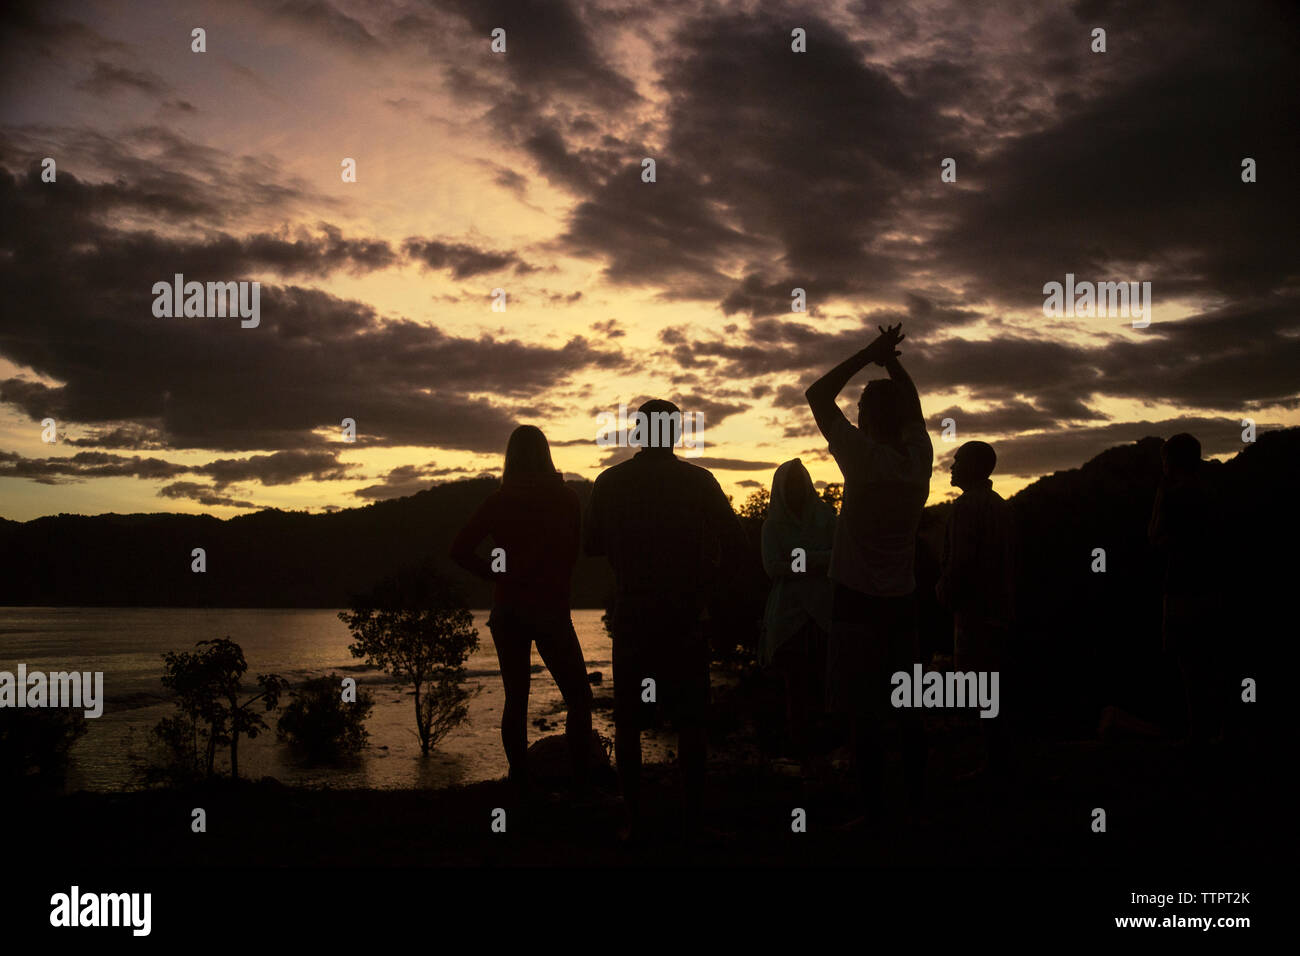 Silhouette friends enjoying at lakeshore against cloudy sky during sunset - Stock Image